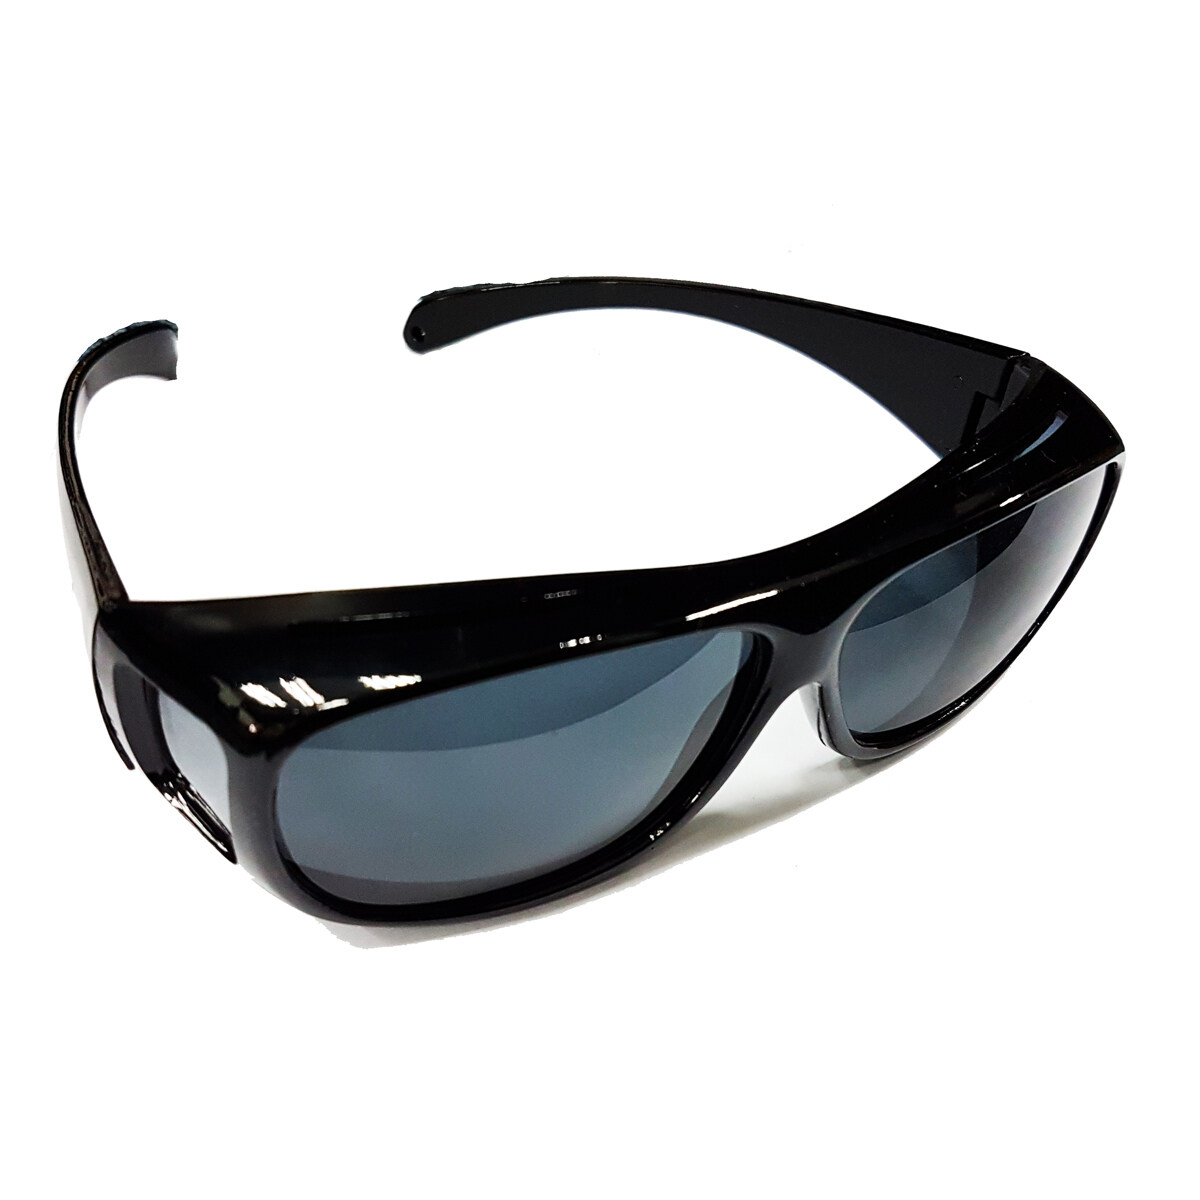 Sunglasses Tv  as seen on tv hd vision driving anti glare wrap around sunglasses